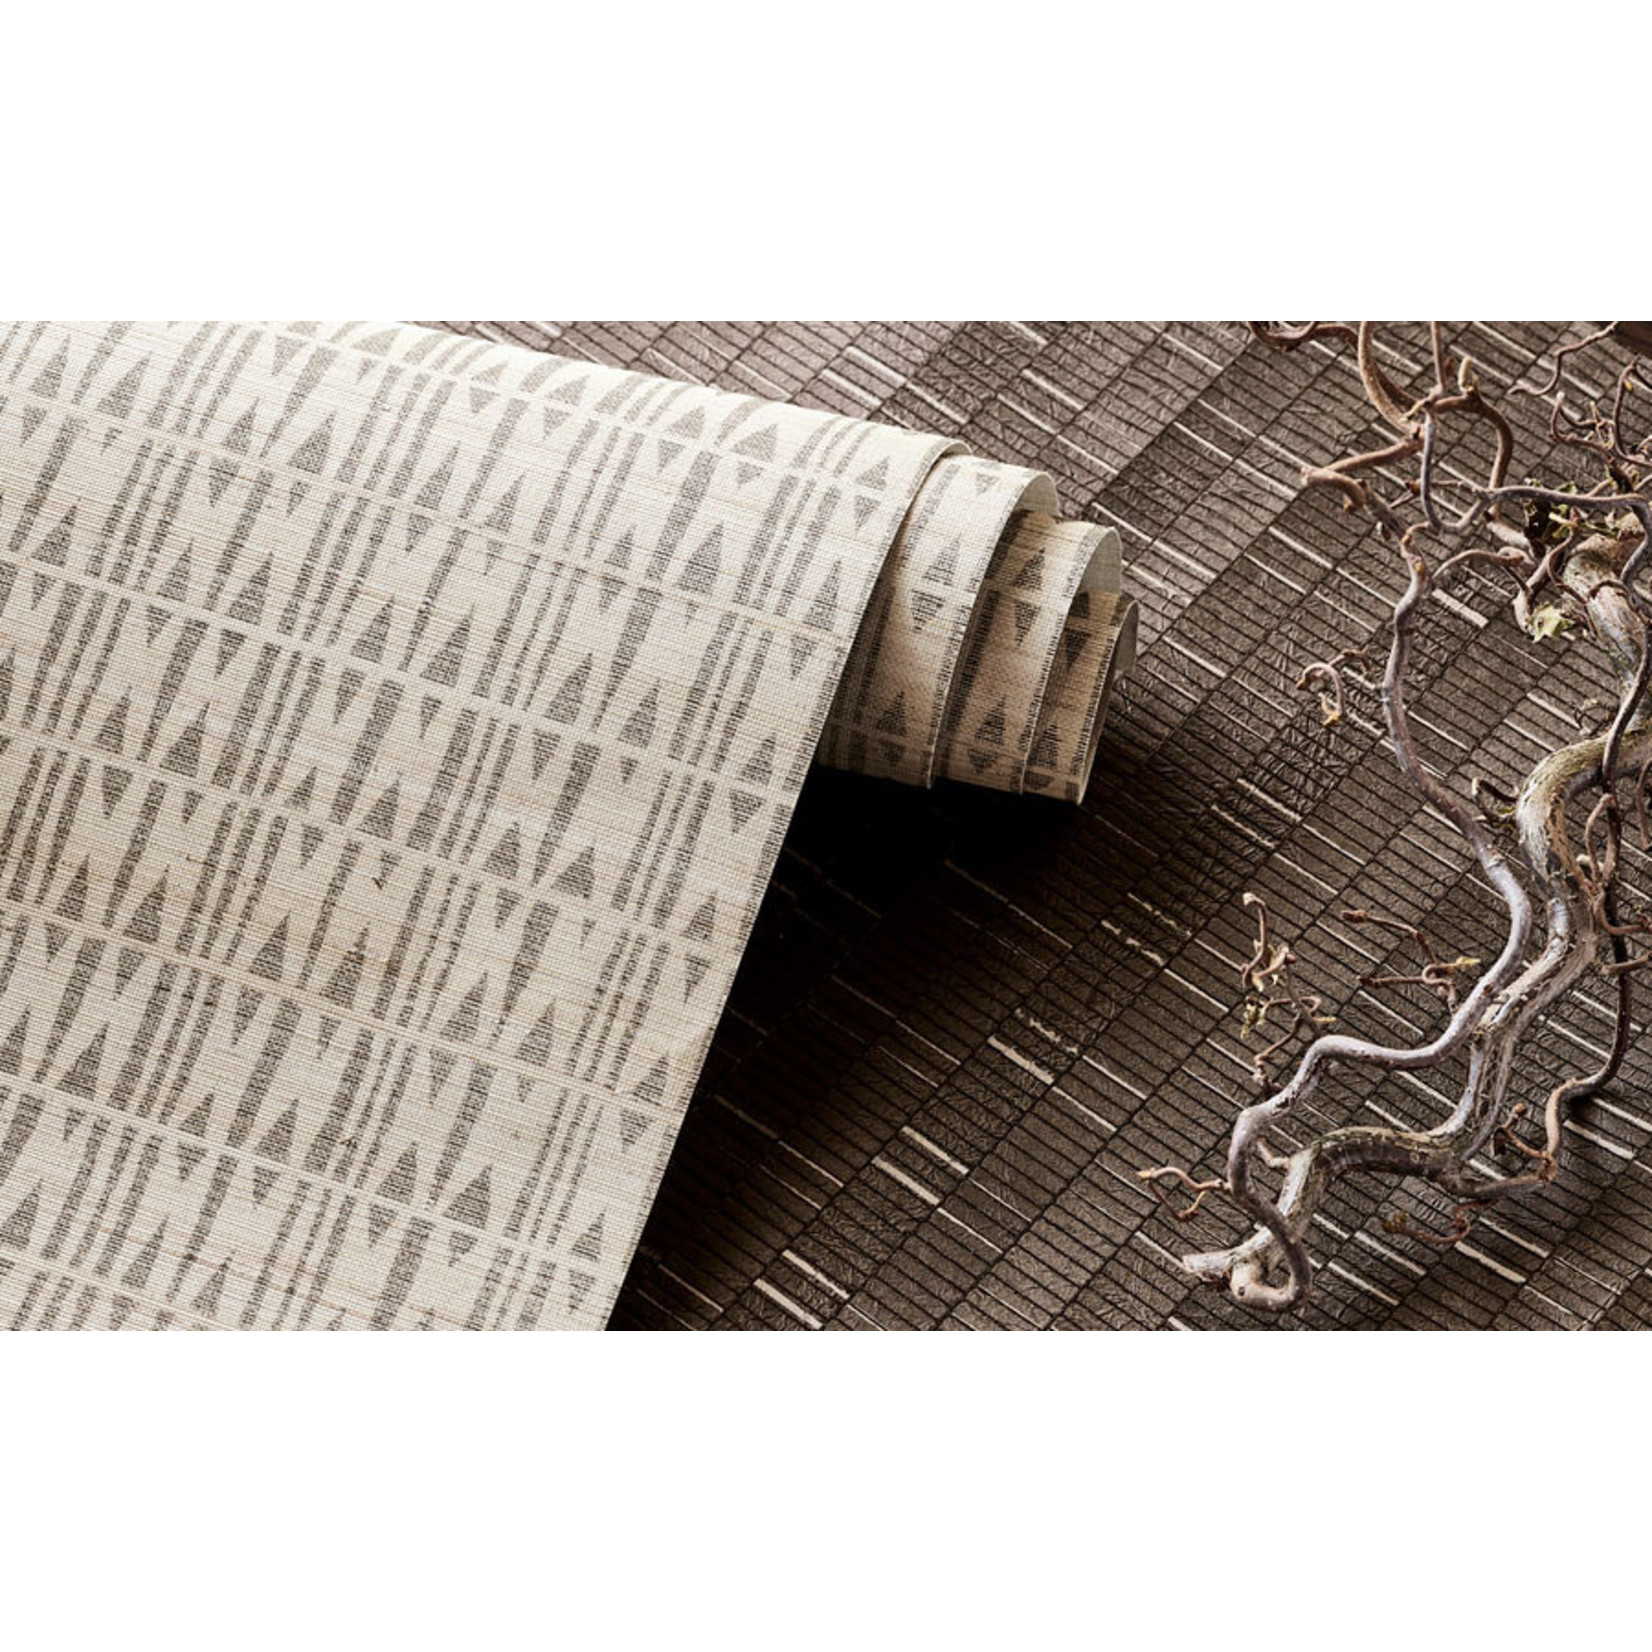 Mark Alexander Collage Handcrafted Wallcoverings | Tipi Parchment